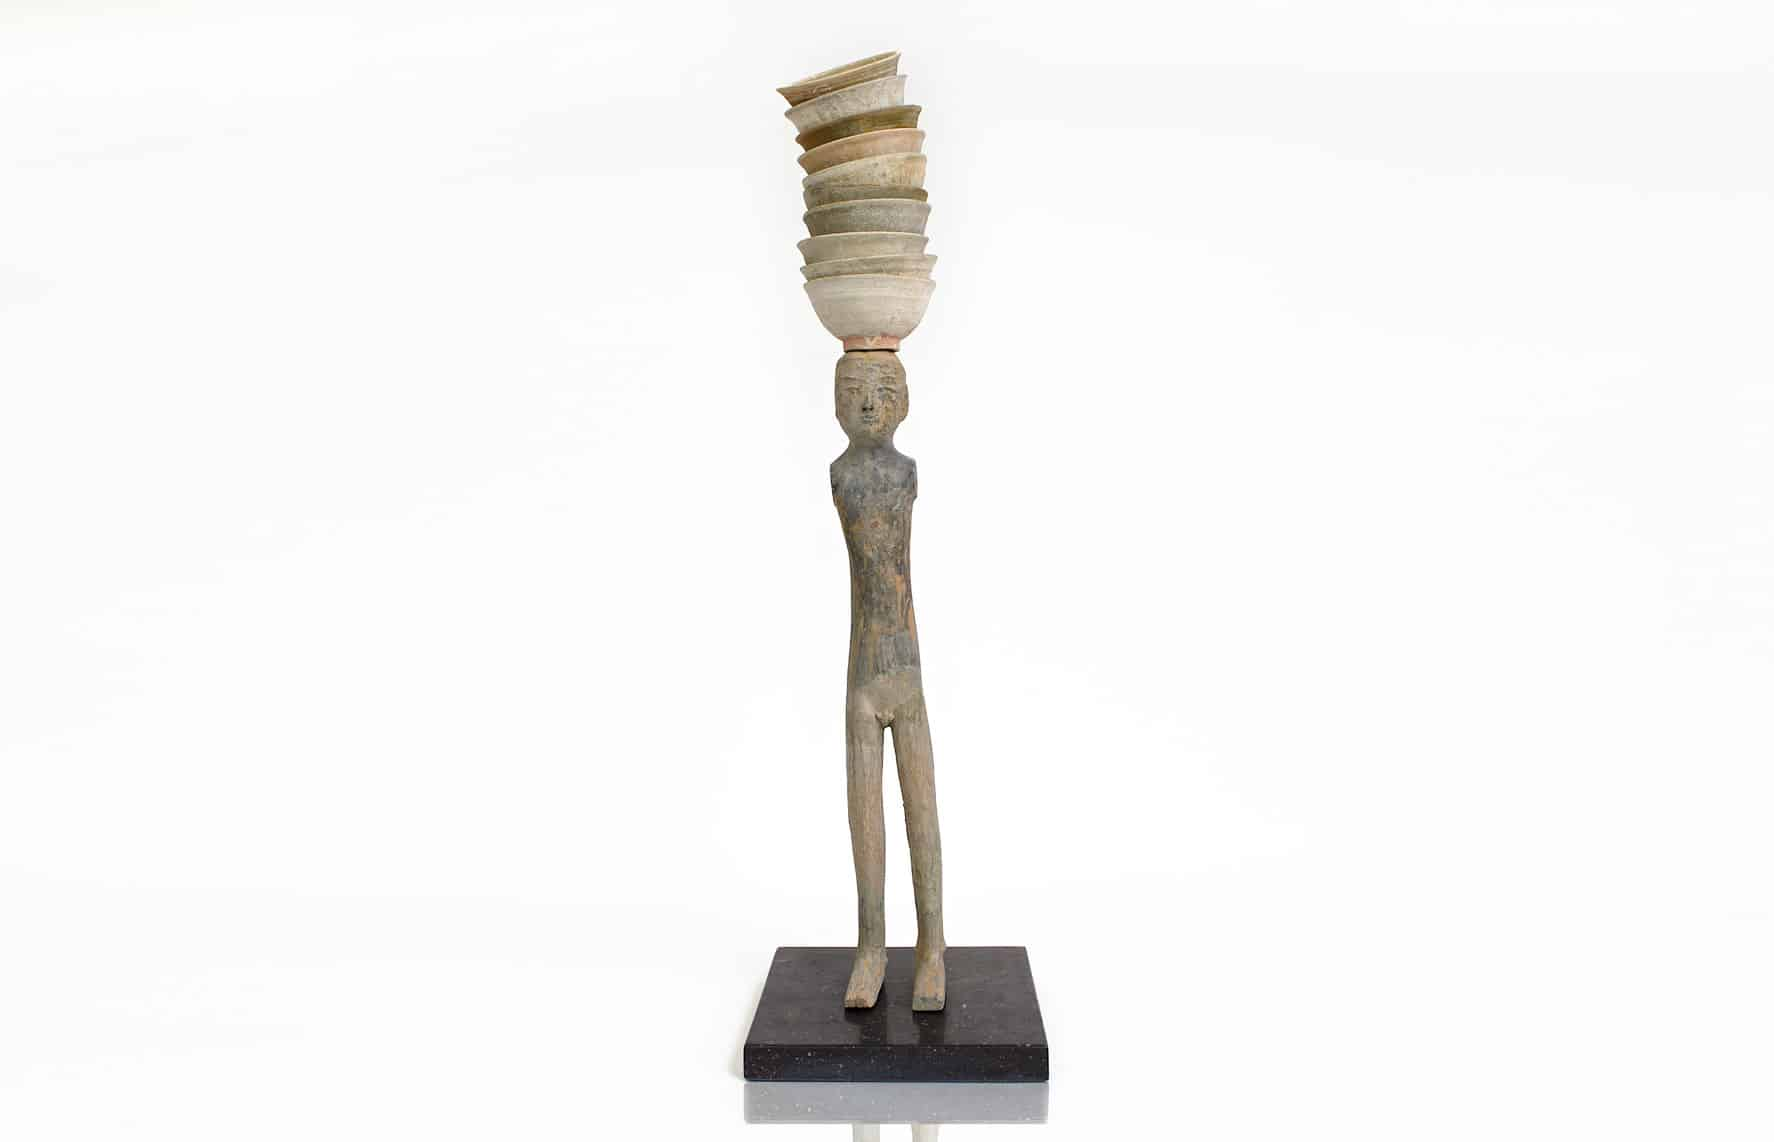 Ceramic sculpture by Bouke de Vries